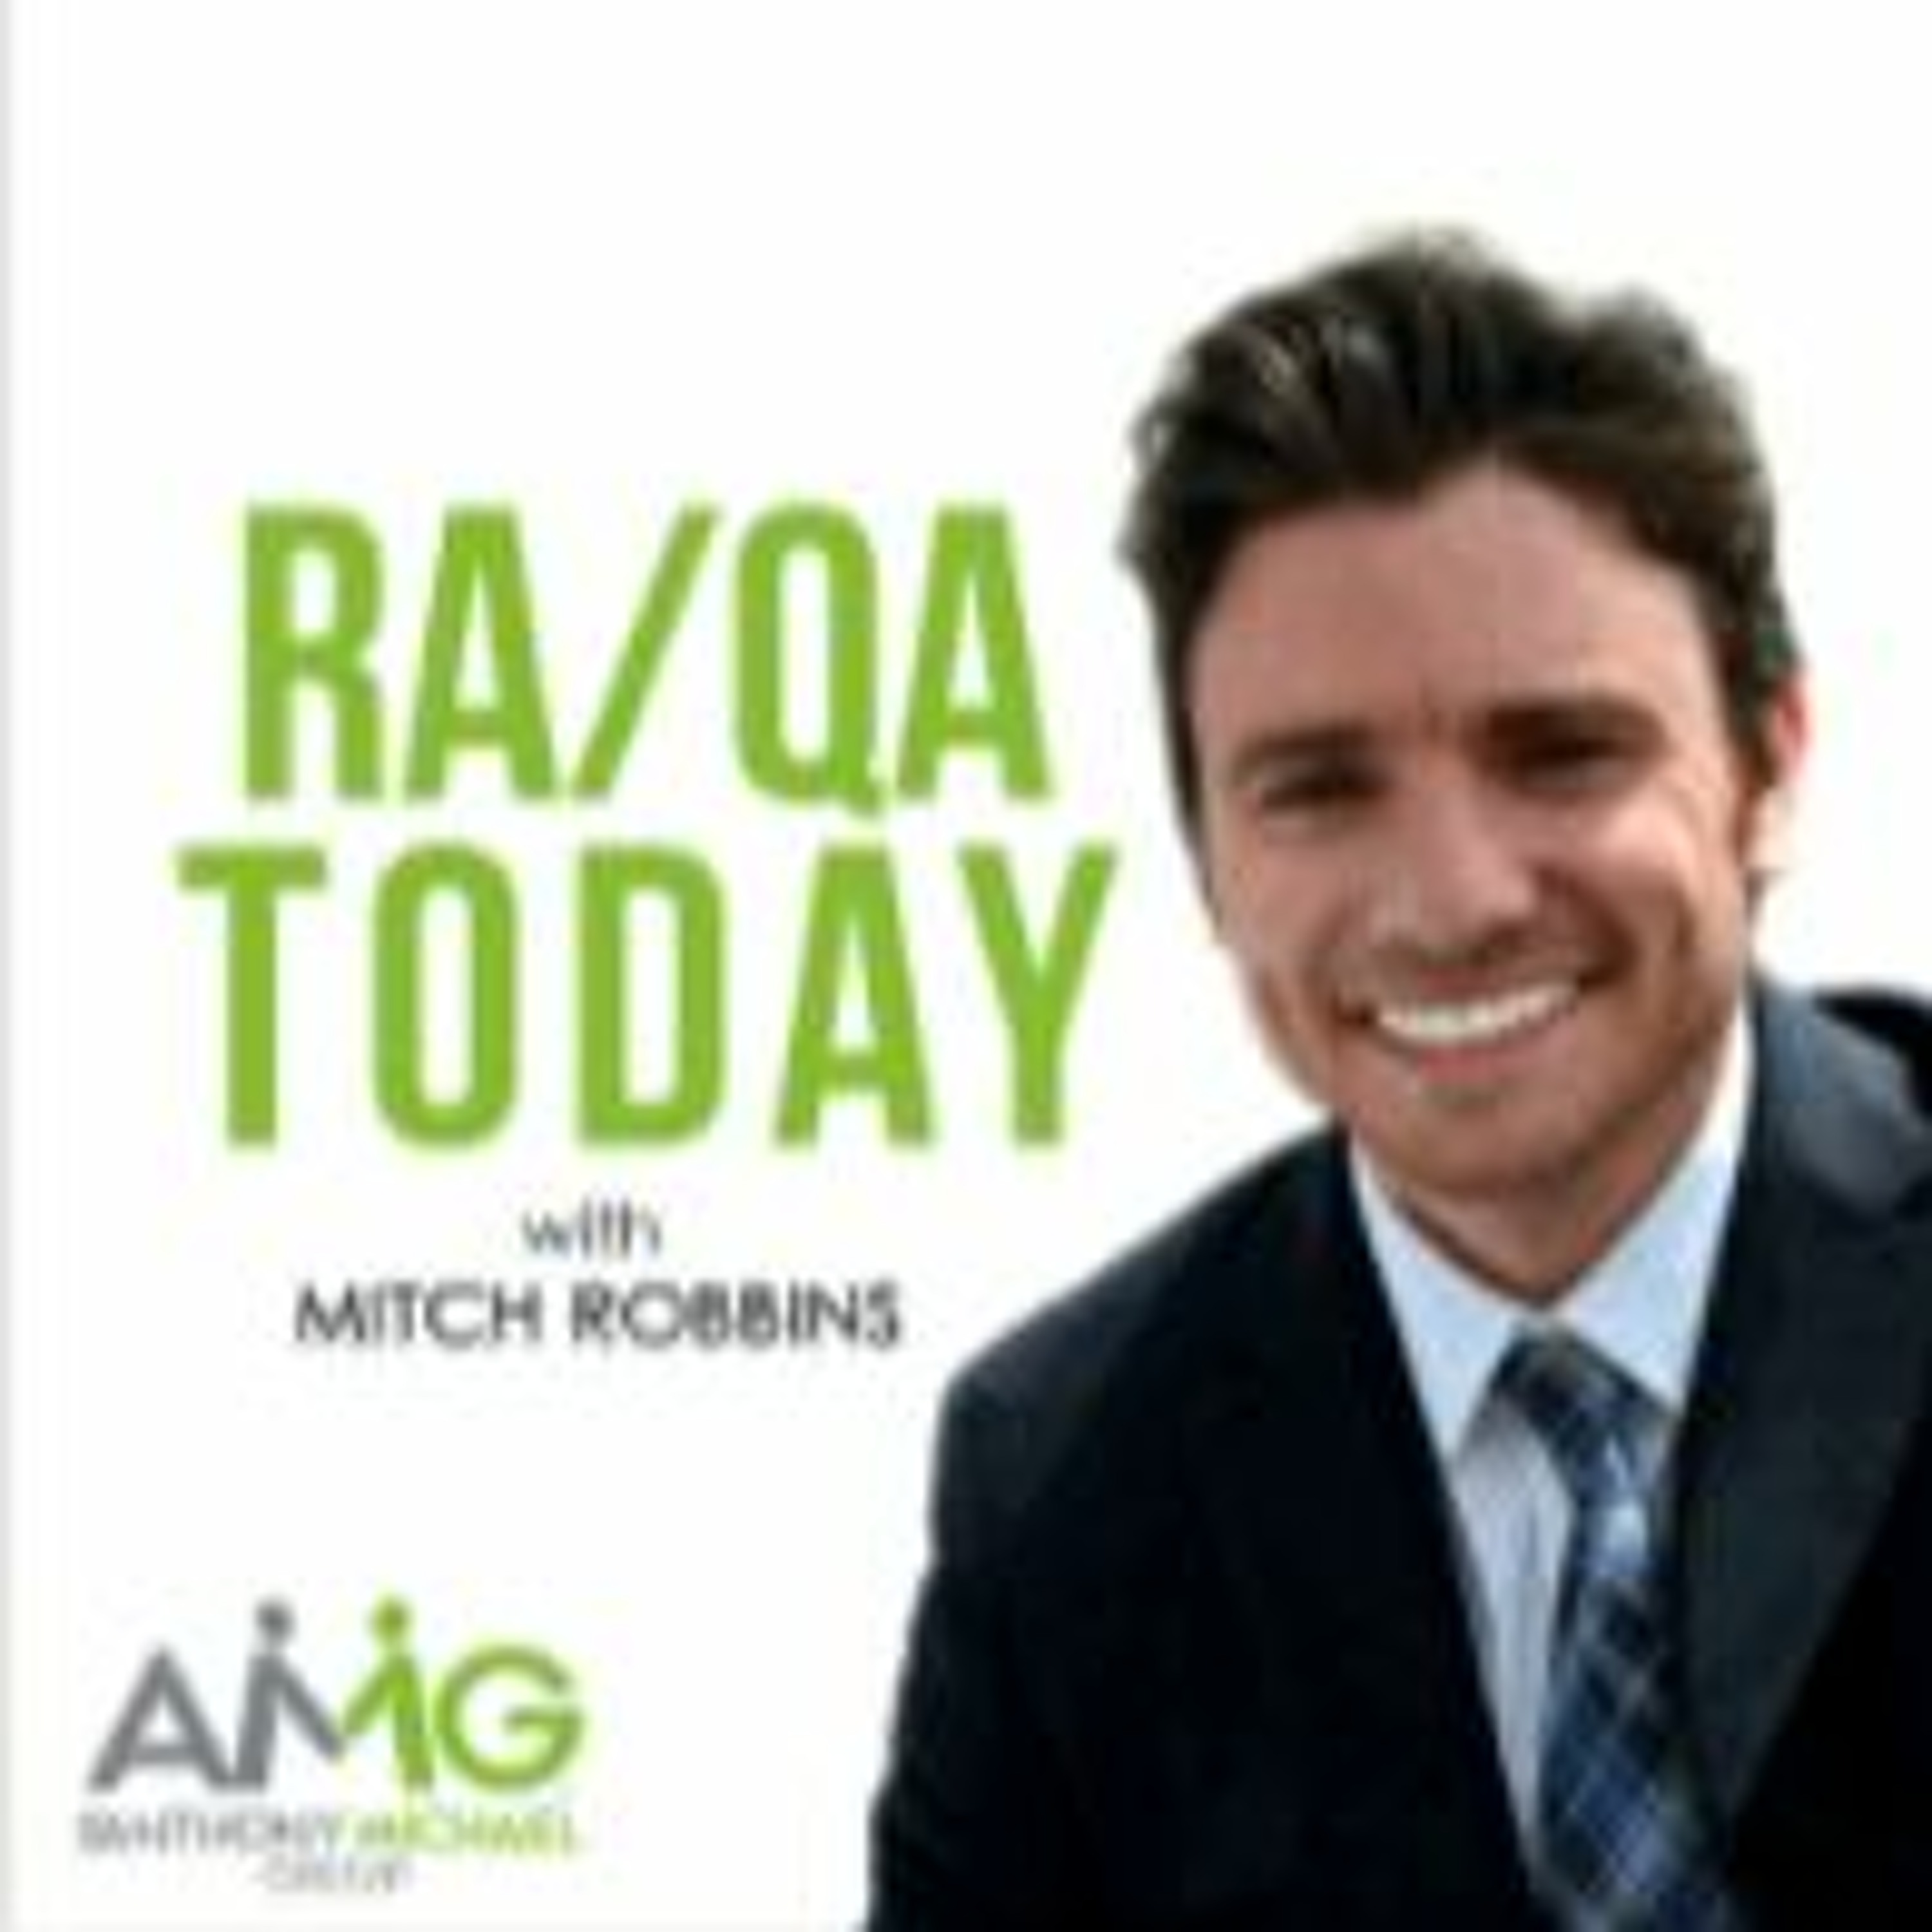 RAQA - Mitch Robbins-Adam Saupe-Interview Prep